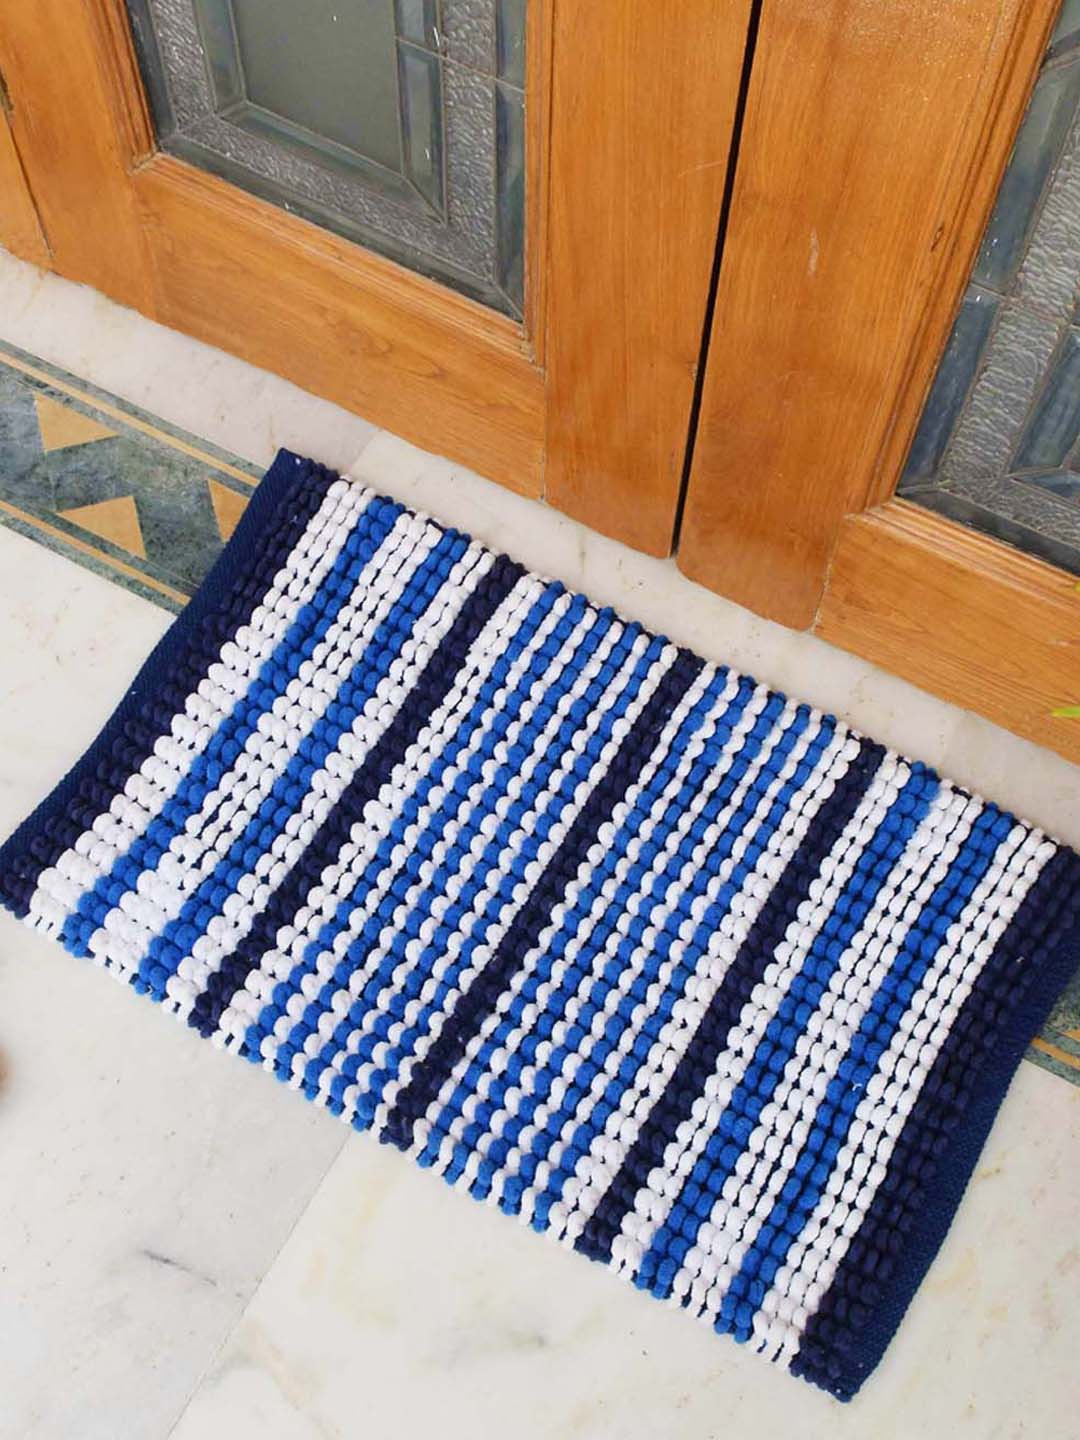 Avi Living Handloom Blue White 1600 Gsm Woven Bath Mat Set Of 1 From Avi Living At Best Prices On Tata Cliq